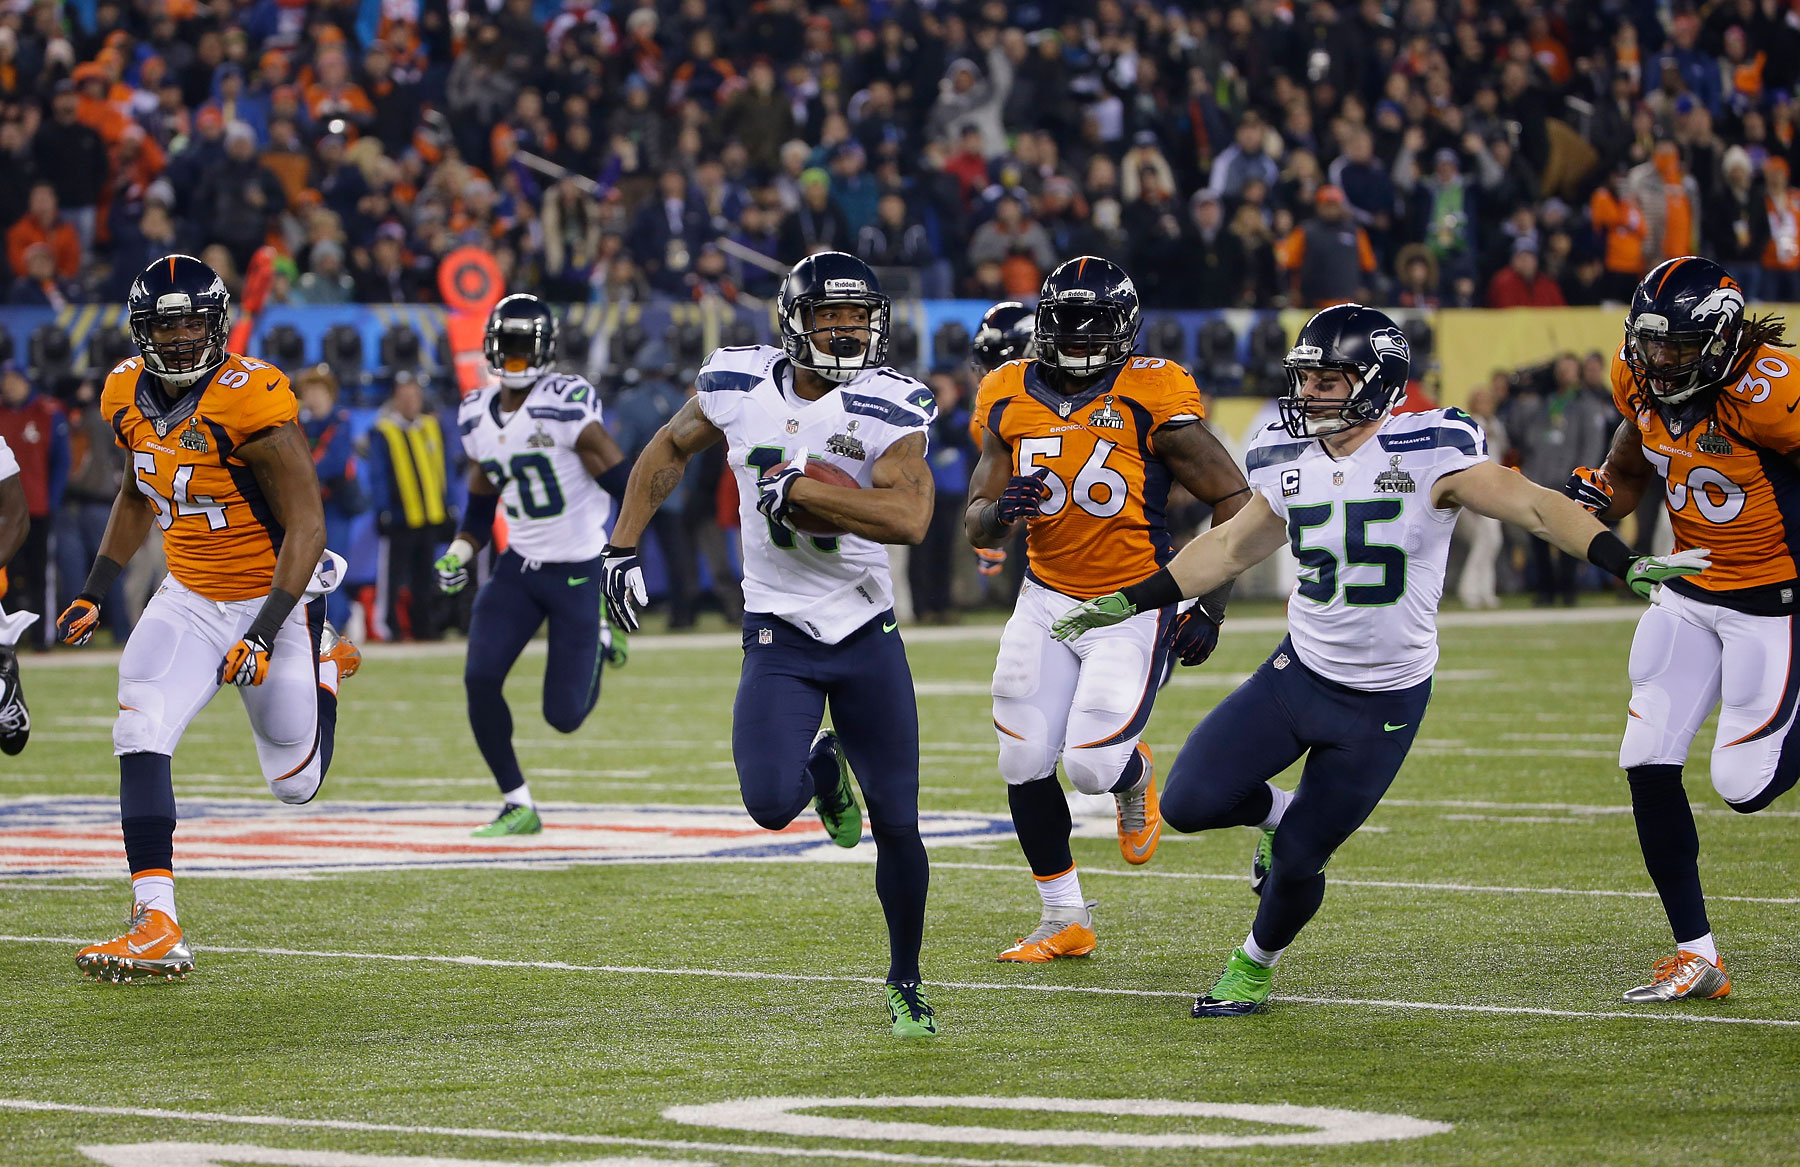 Seattle Seahawks' Percy Harvin, center, returns a kickoff 87-yards for a touchdown during the opening seconds of the third quarter.